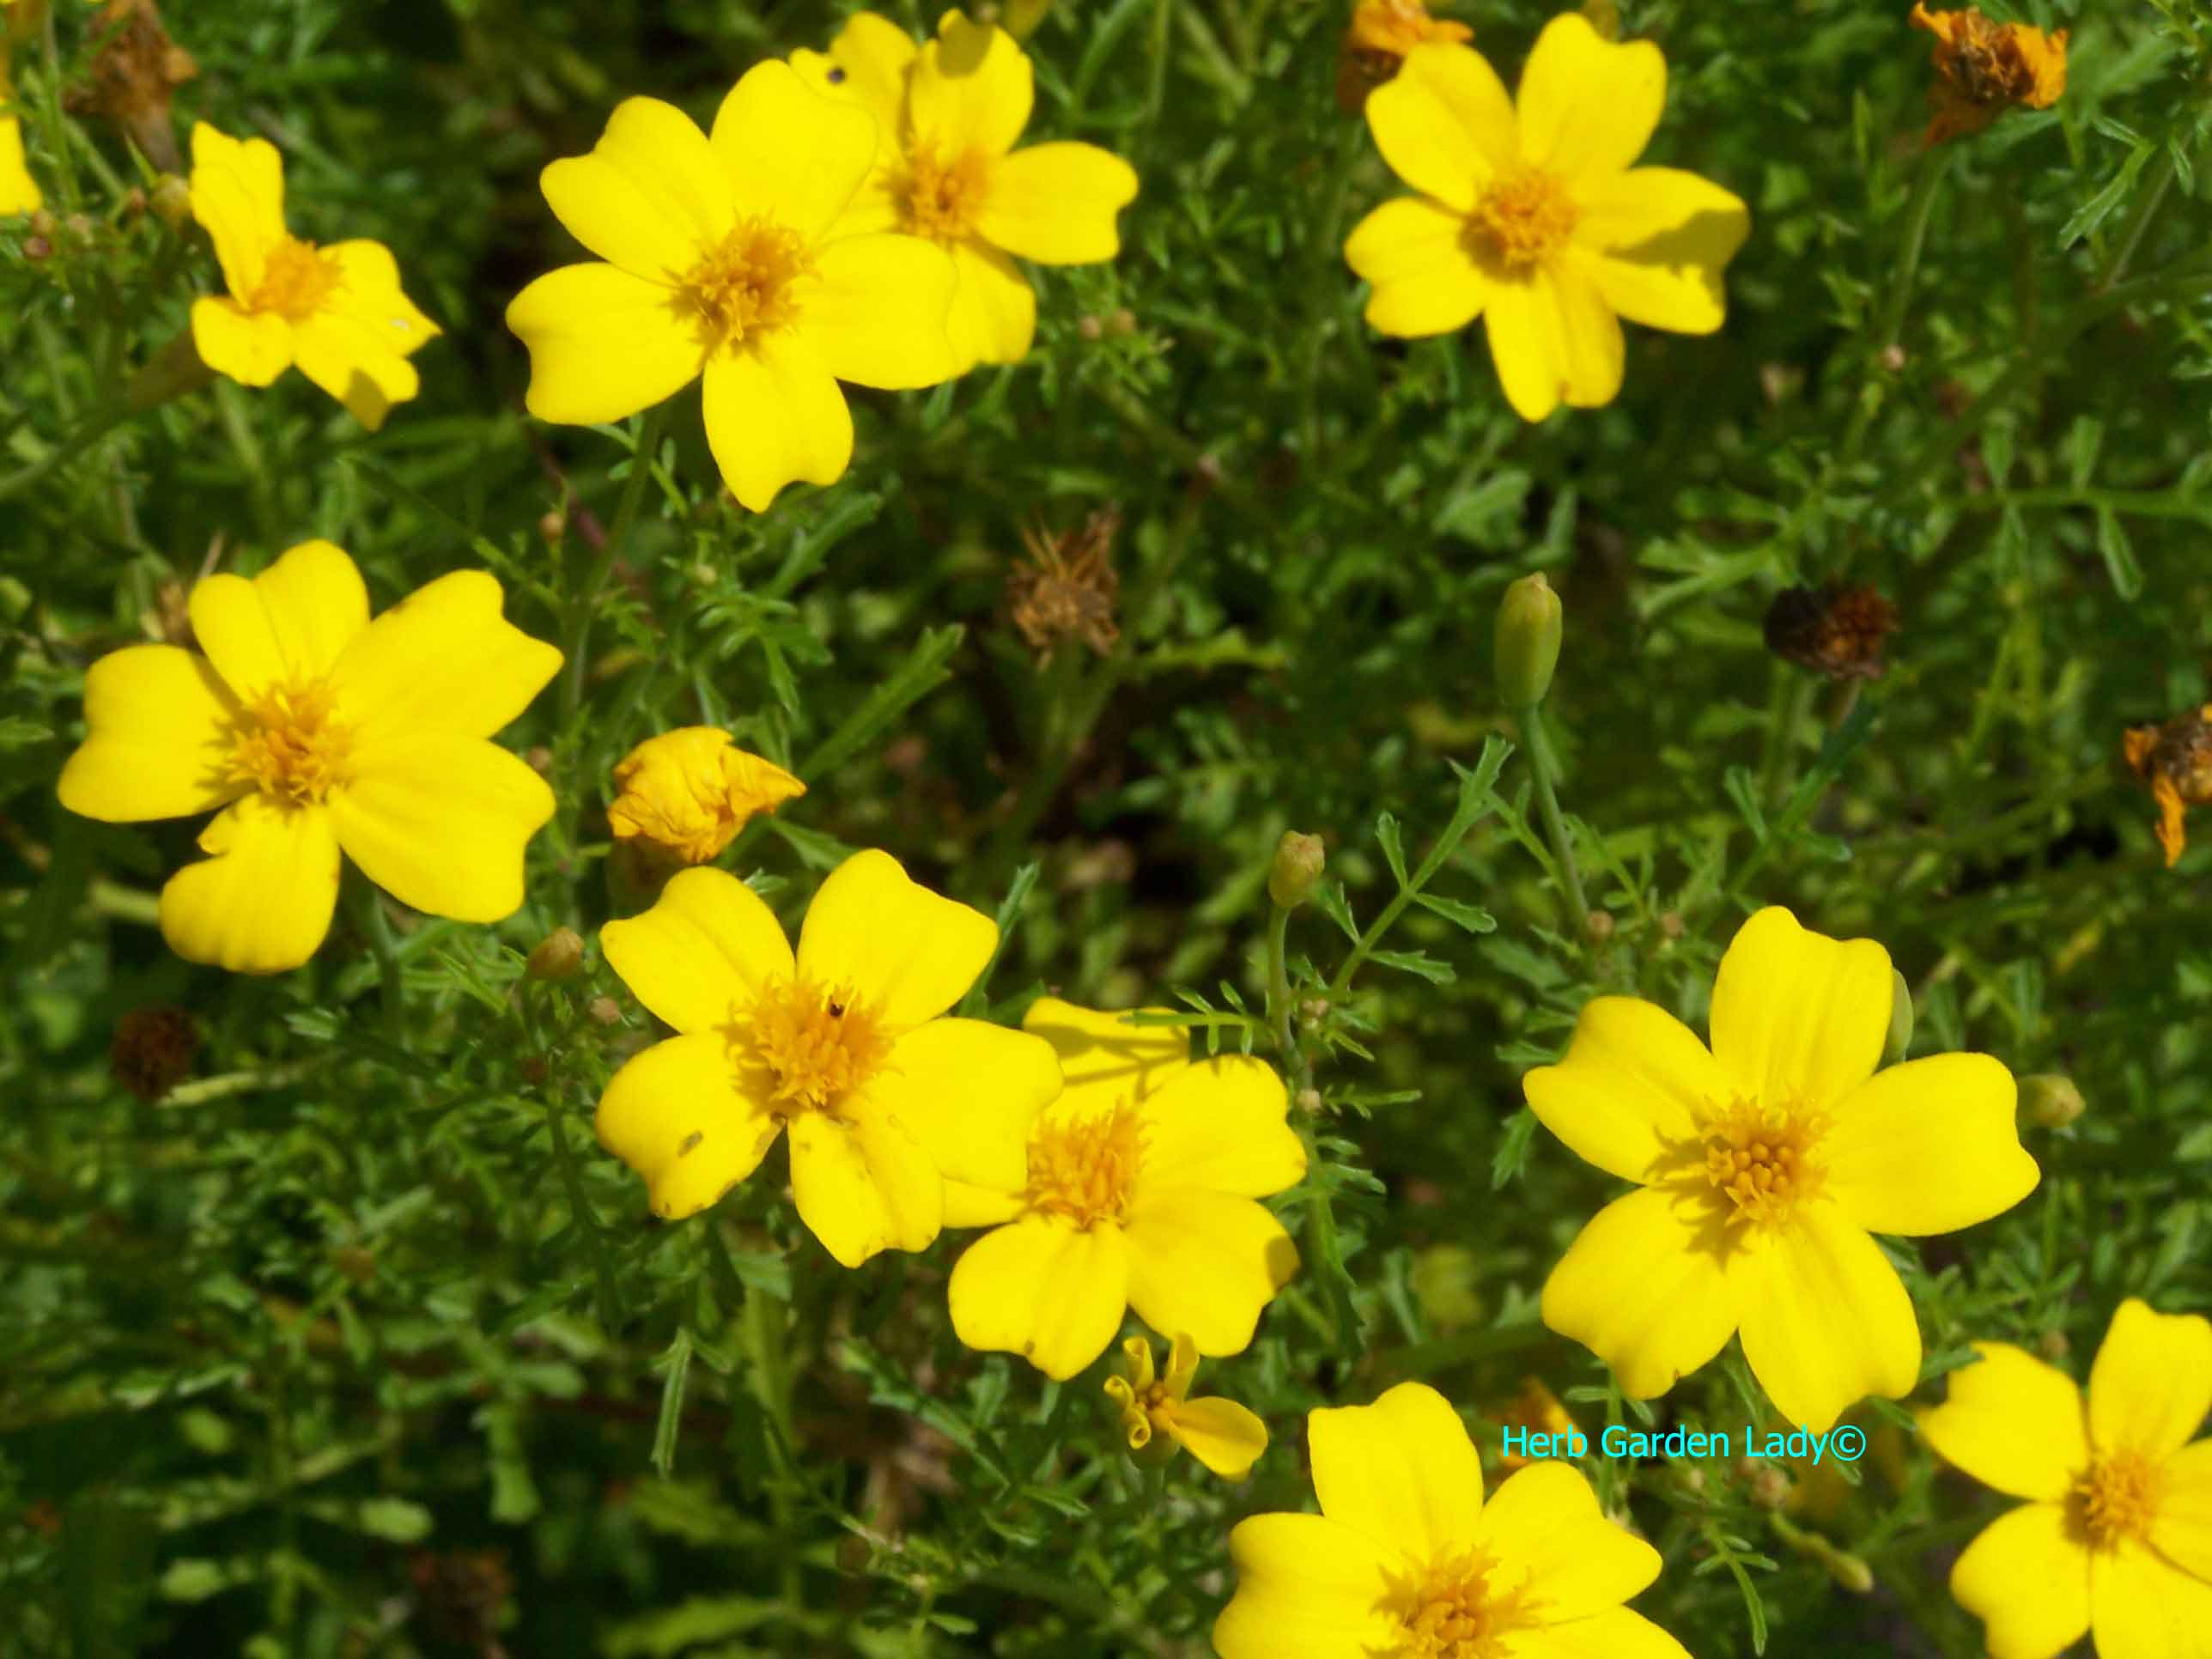 Edible flowers are eaten for culinary and medicinal uses lemon gem tagetes tenuifolia marigolds are edible flowers mightylinksfo